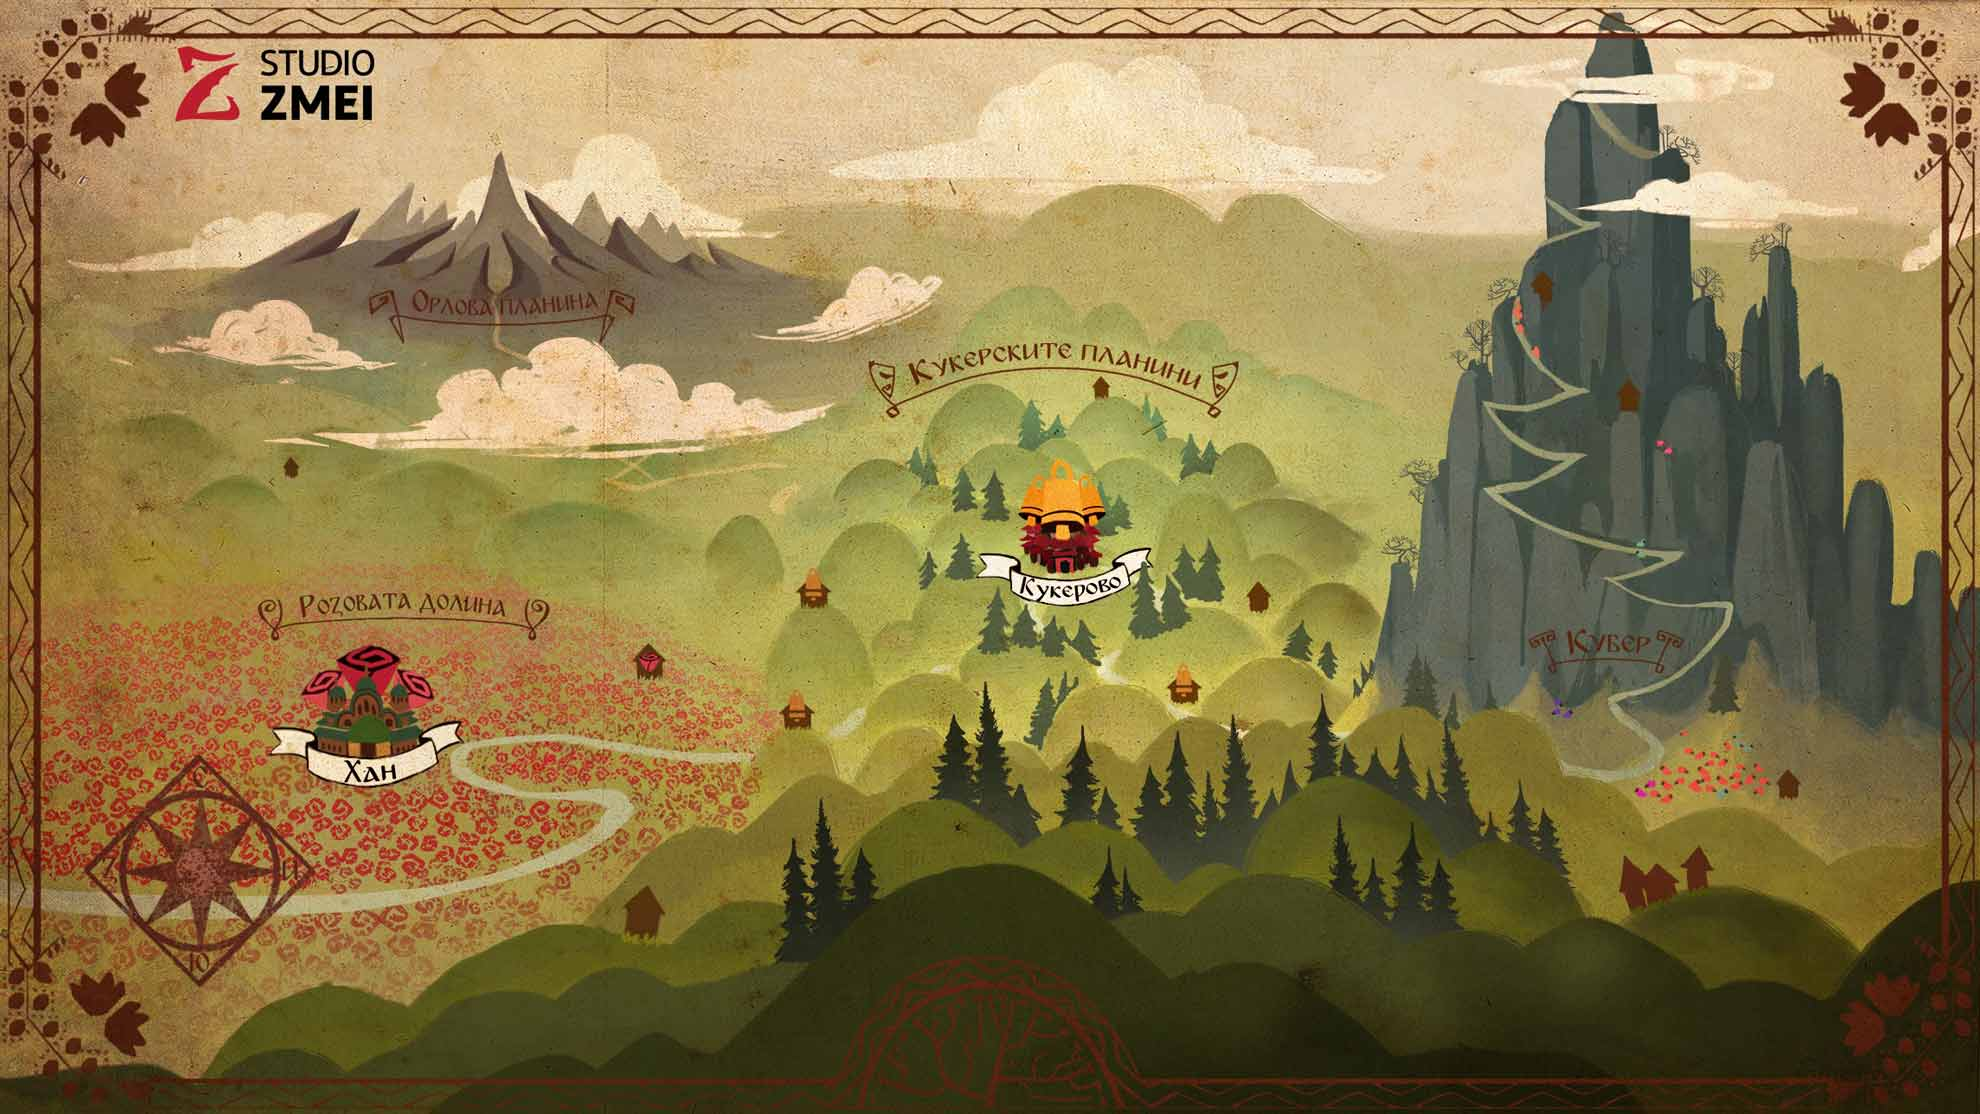 Background Design 09 - The Golden Apple